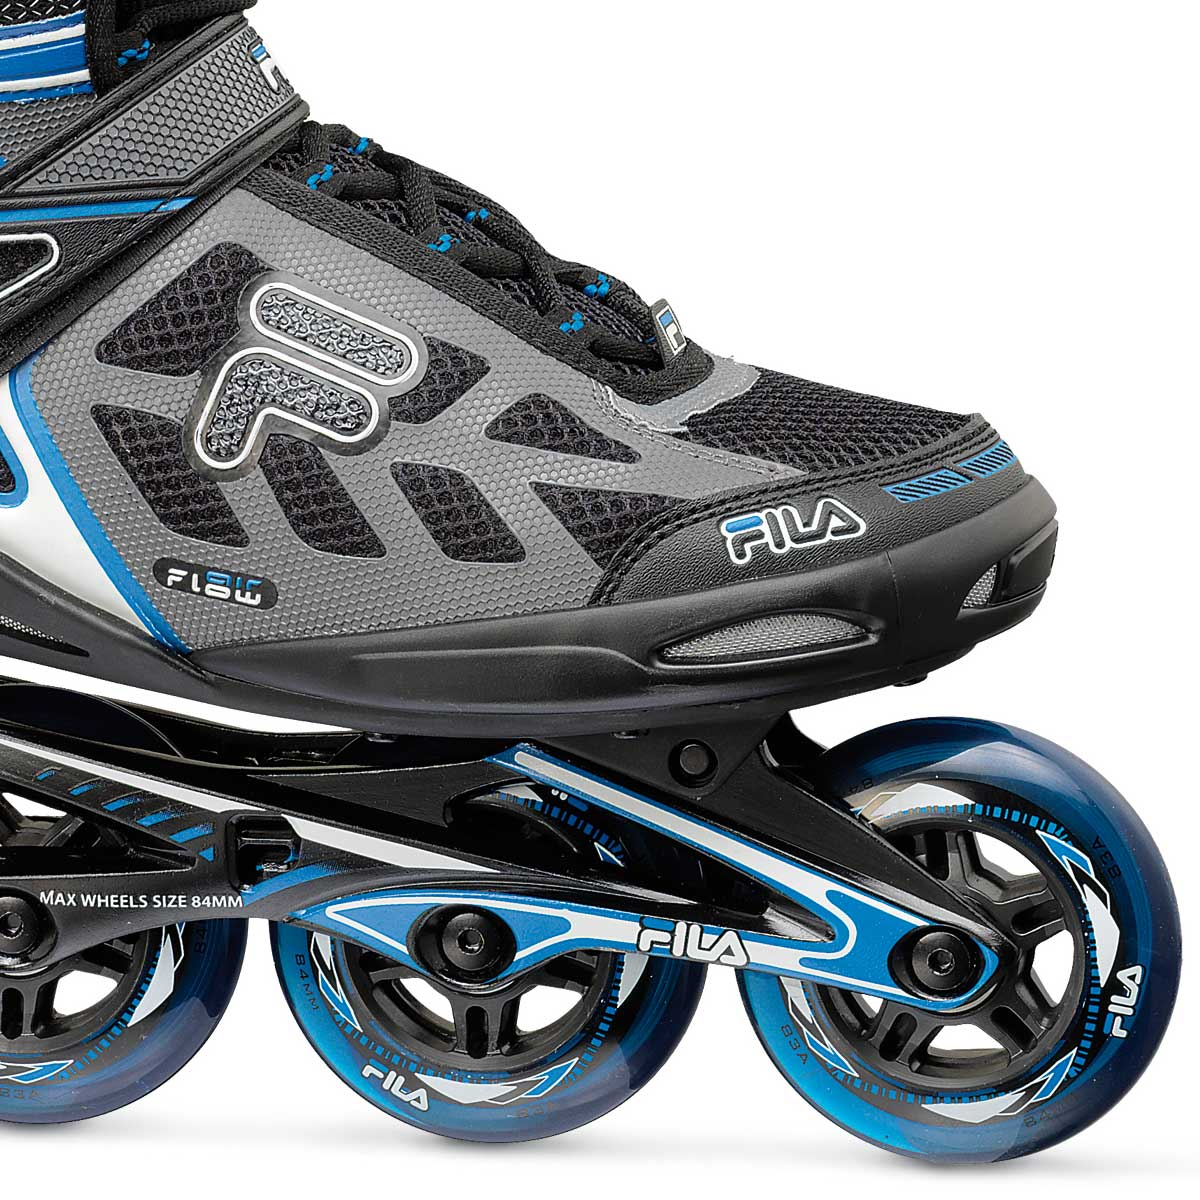 Patins Primo Air Wave 84mm/83A ABEC 7